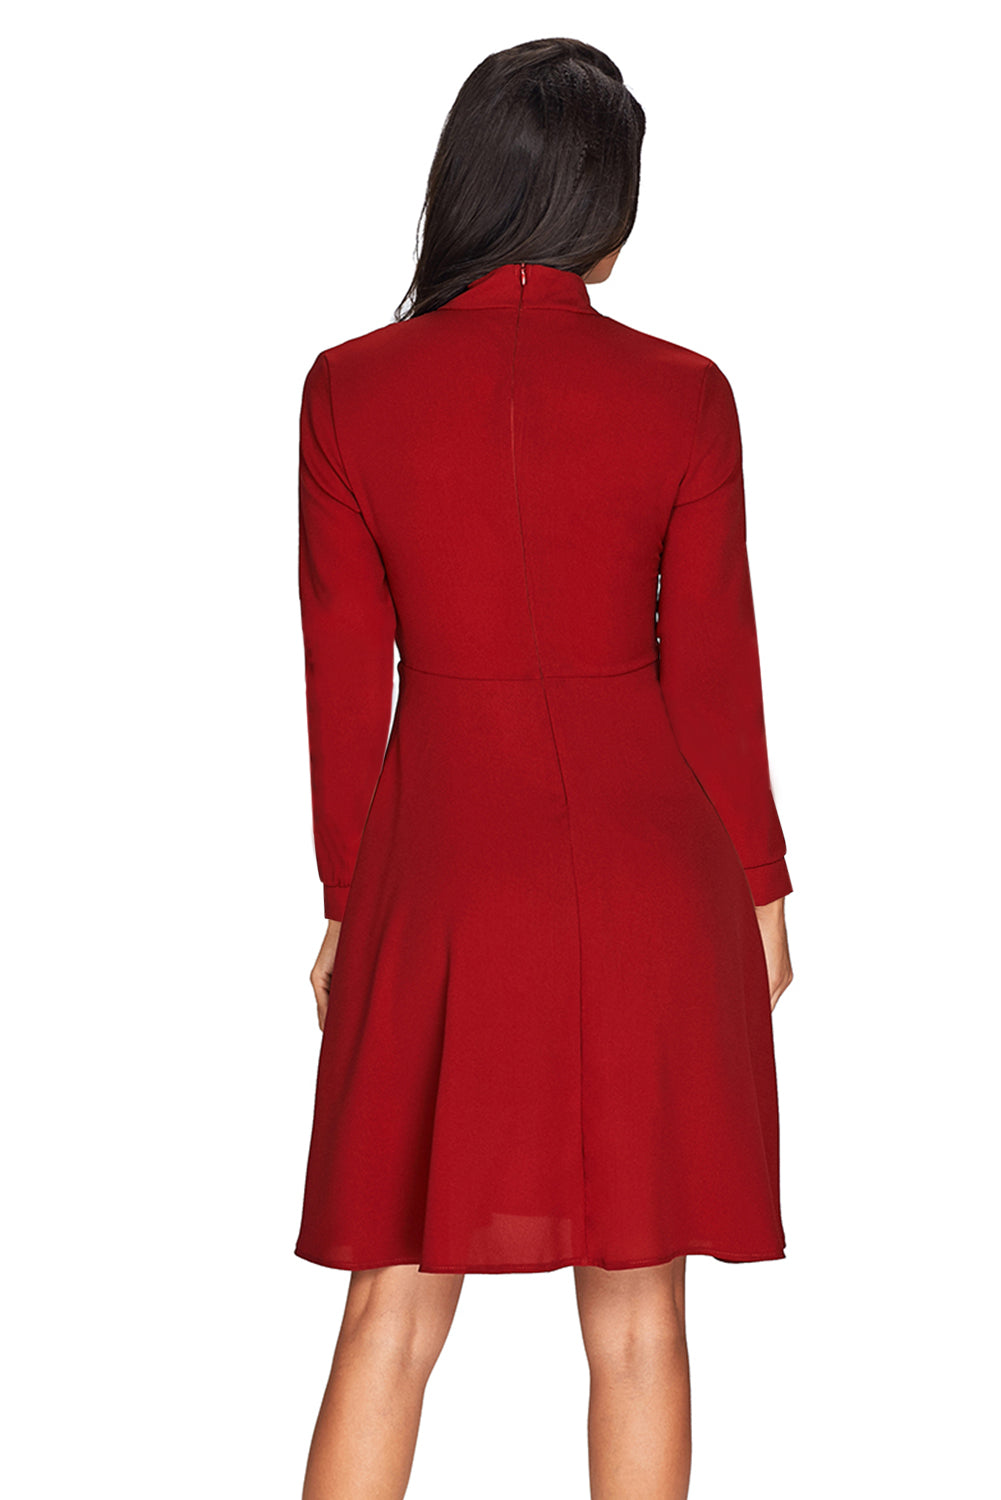 Patchwork Tie Neck Long Sleeve Burgundy Flared Dress